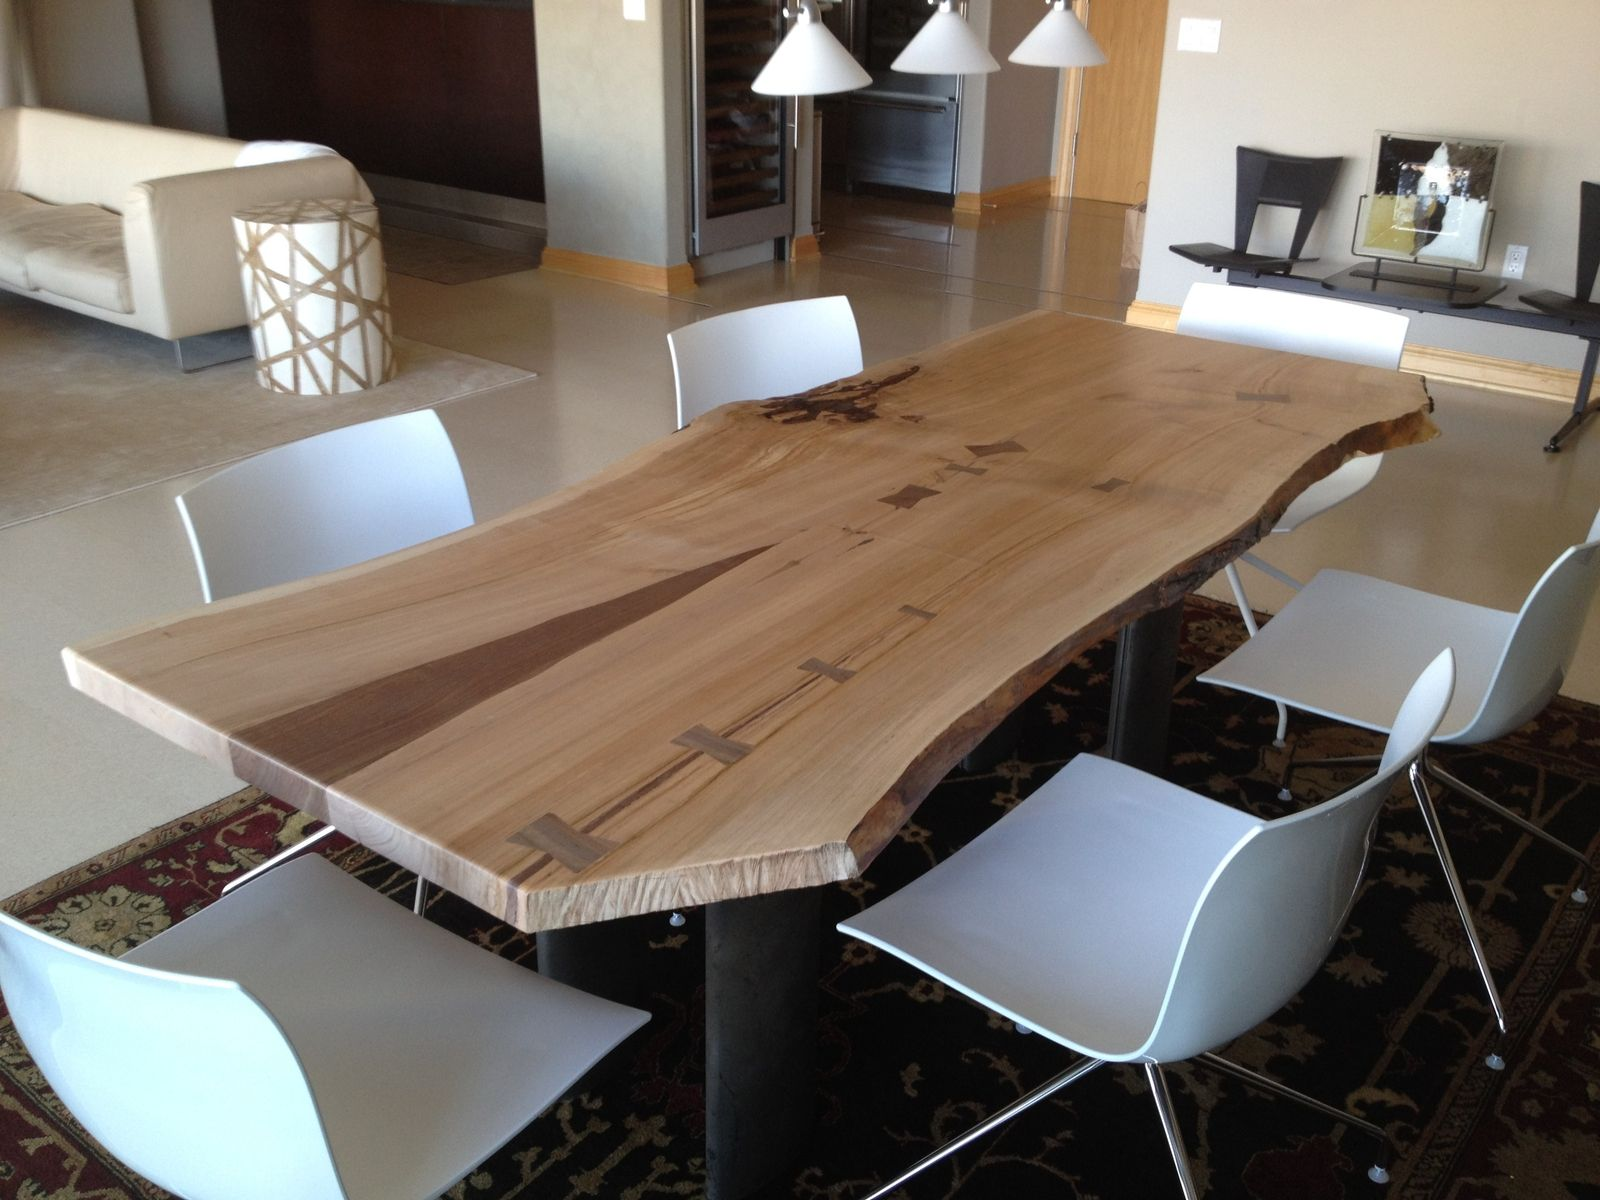 Hand Crafted Living Edge Cherry Dining Table By Opas Custom Woodworking Llc CustomMadecom